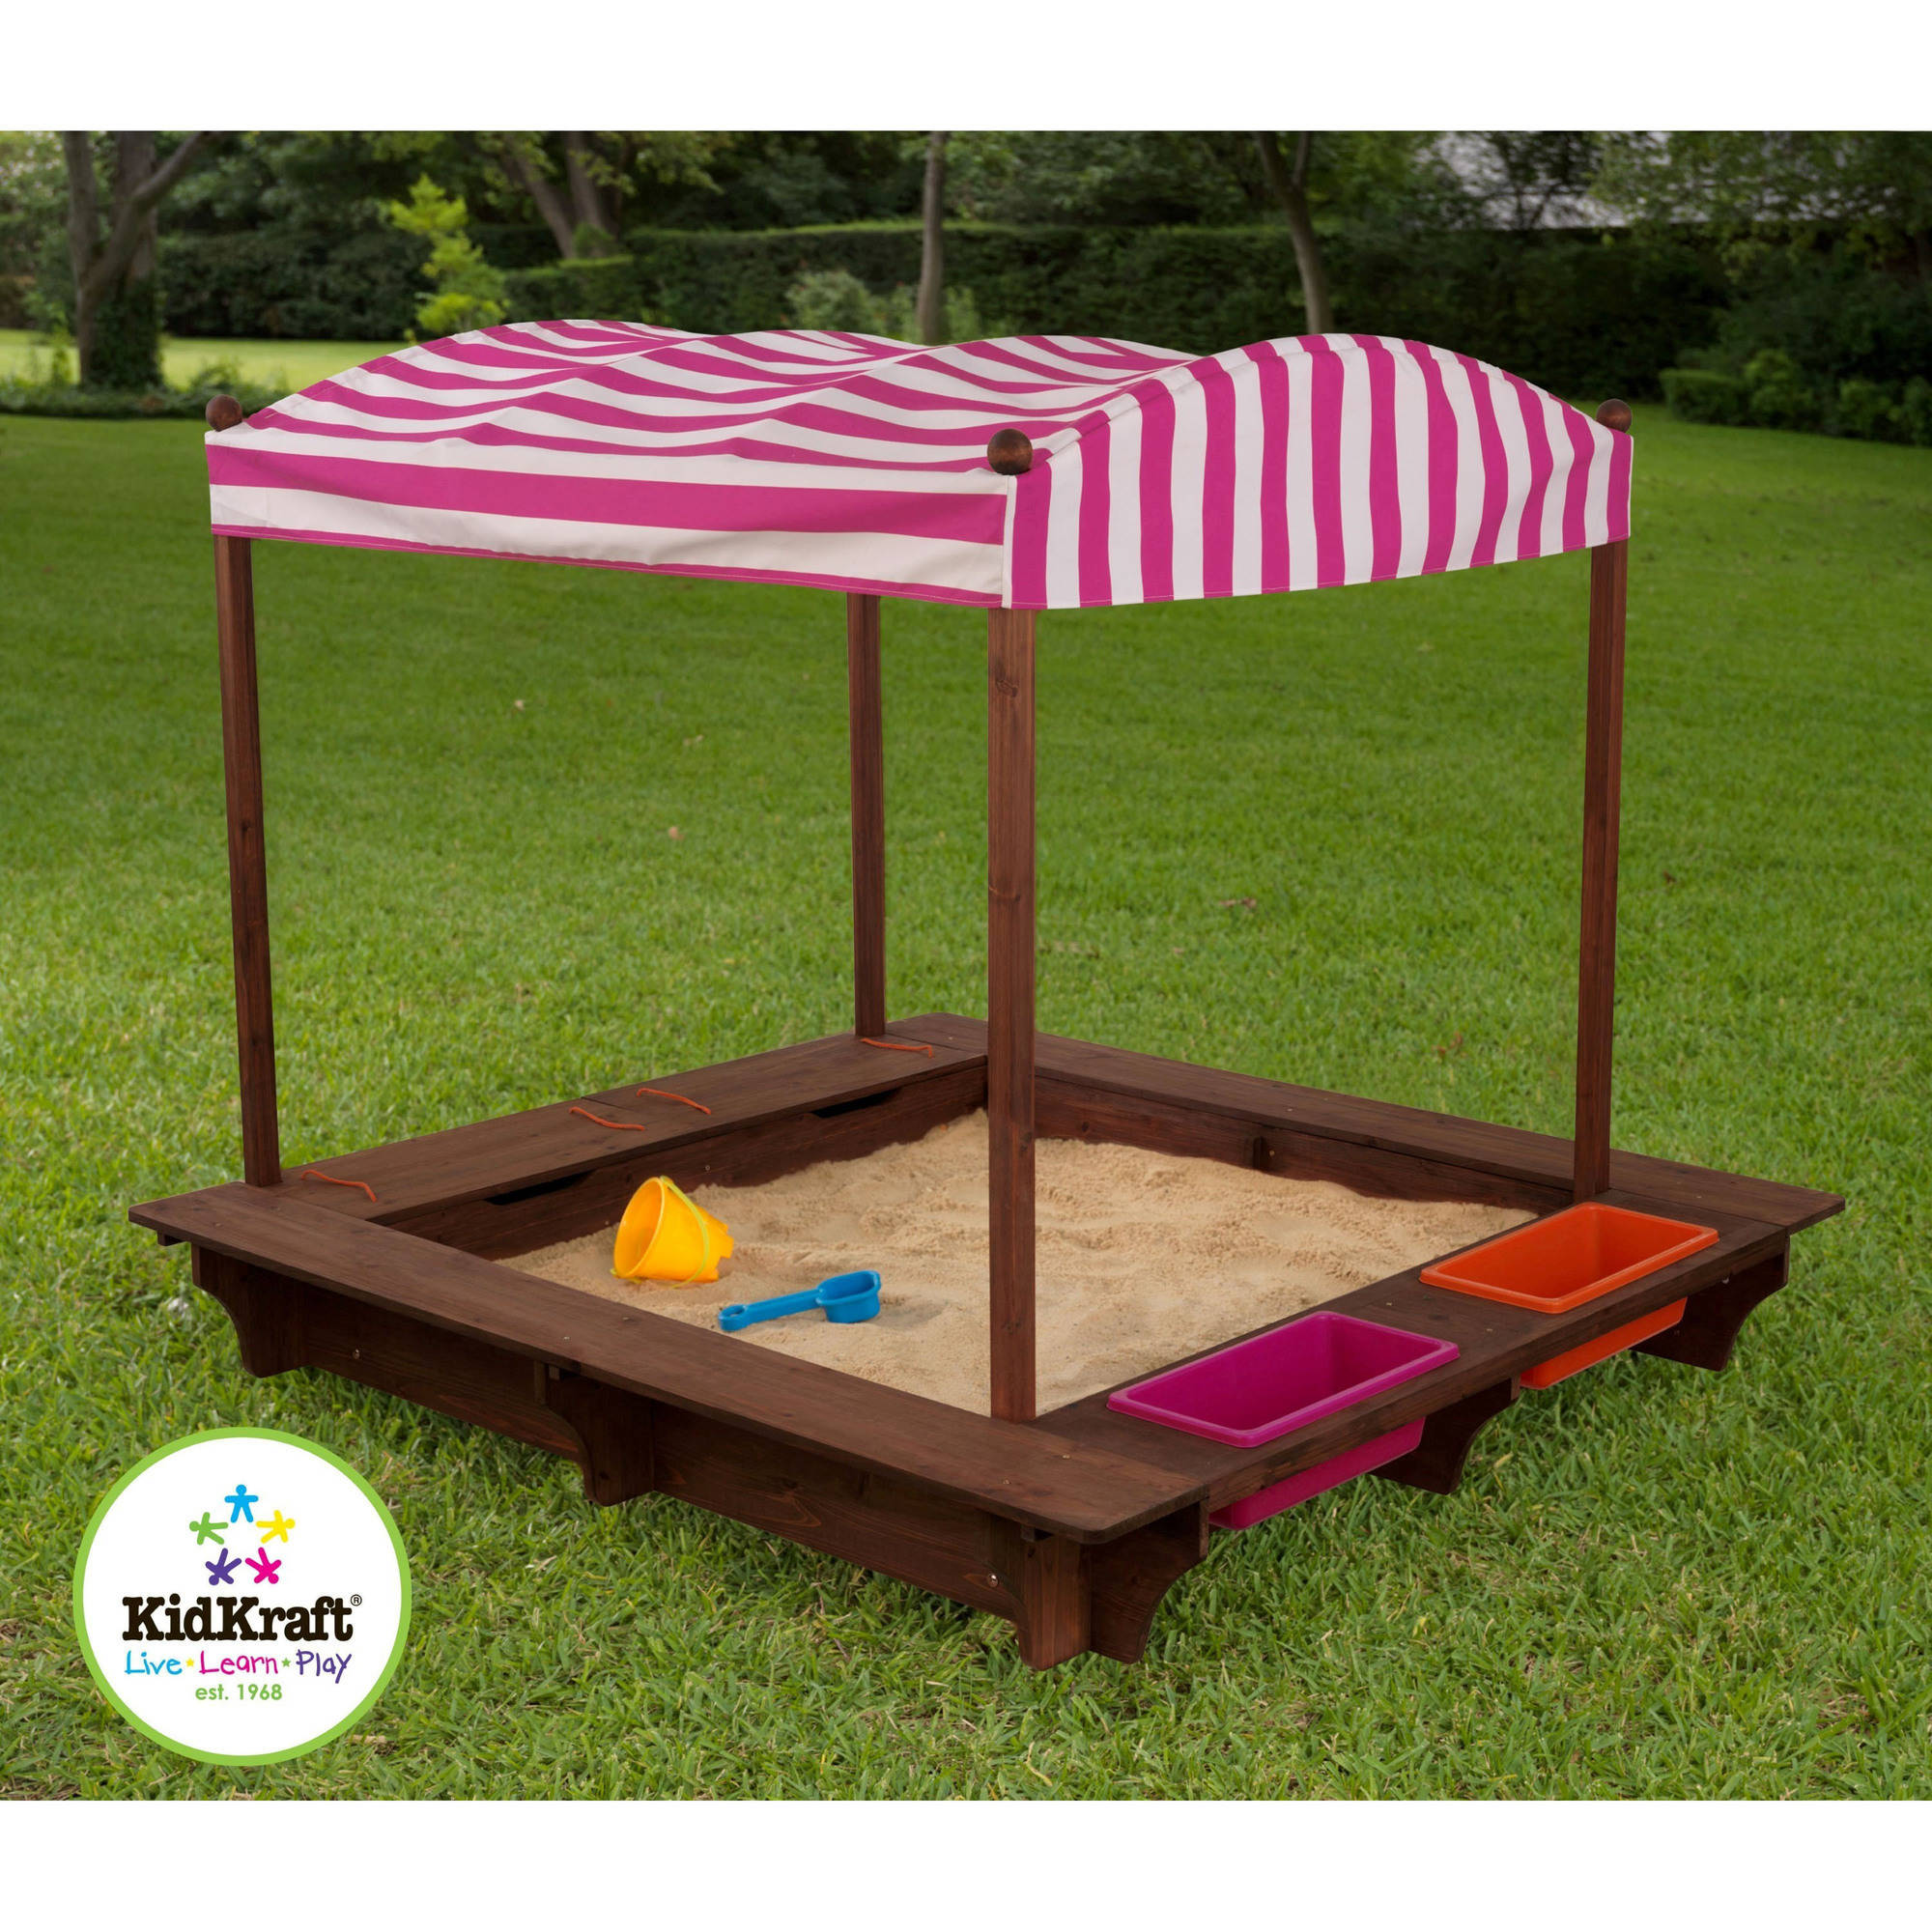 Awesome KidKraft Outdoor Sandbox With Canopy, Pink And White   Walmart.com